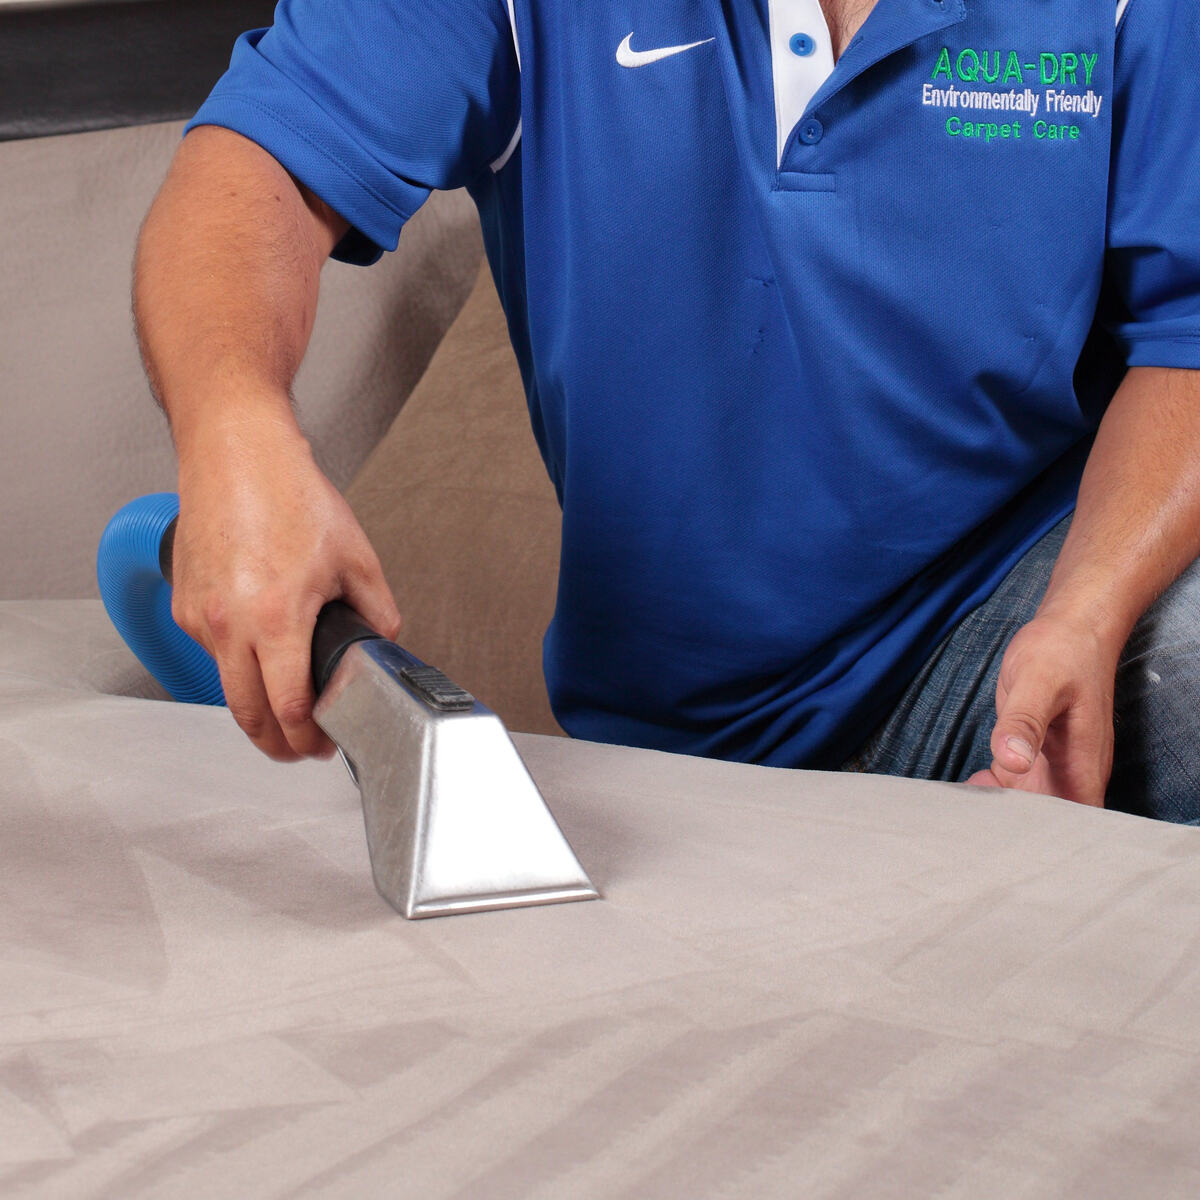 Aqua-Dry uses a high pressure hot water extraction system to effectively clean upholstery with minimal moisture.